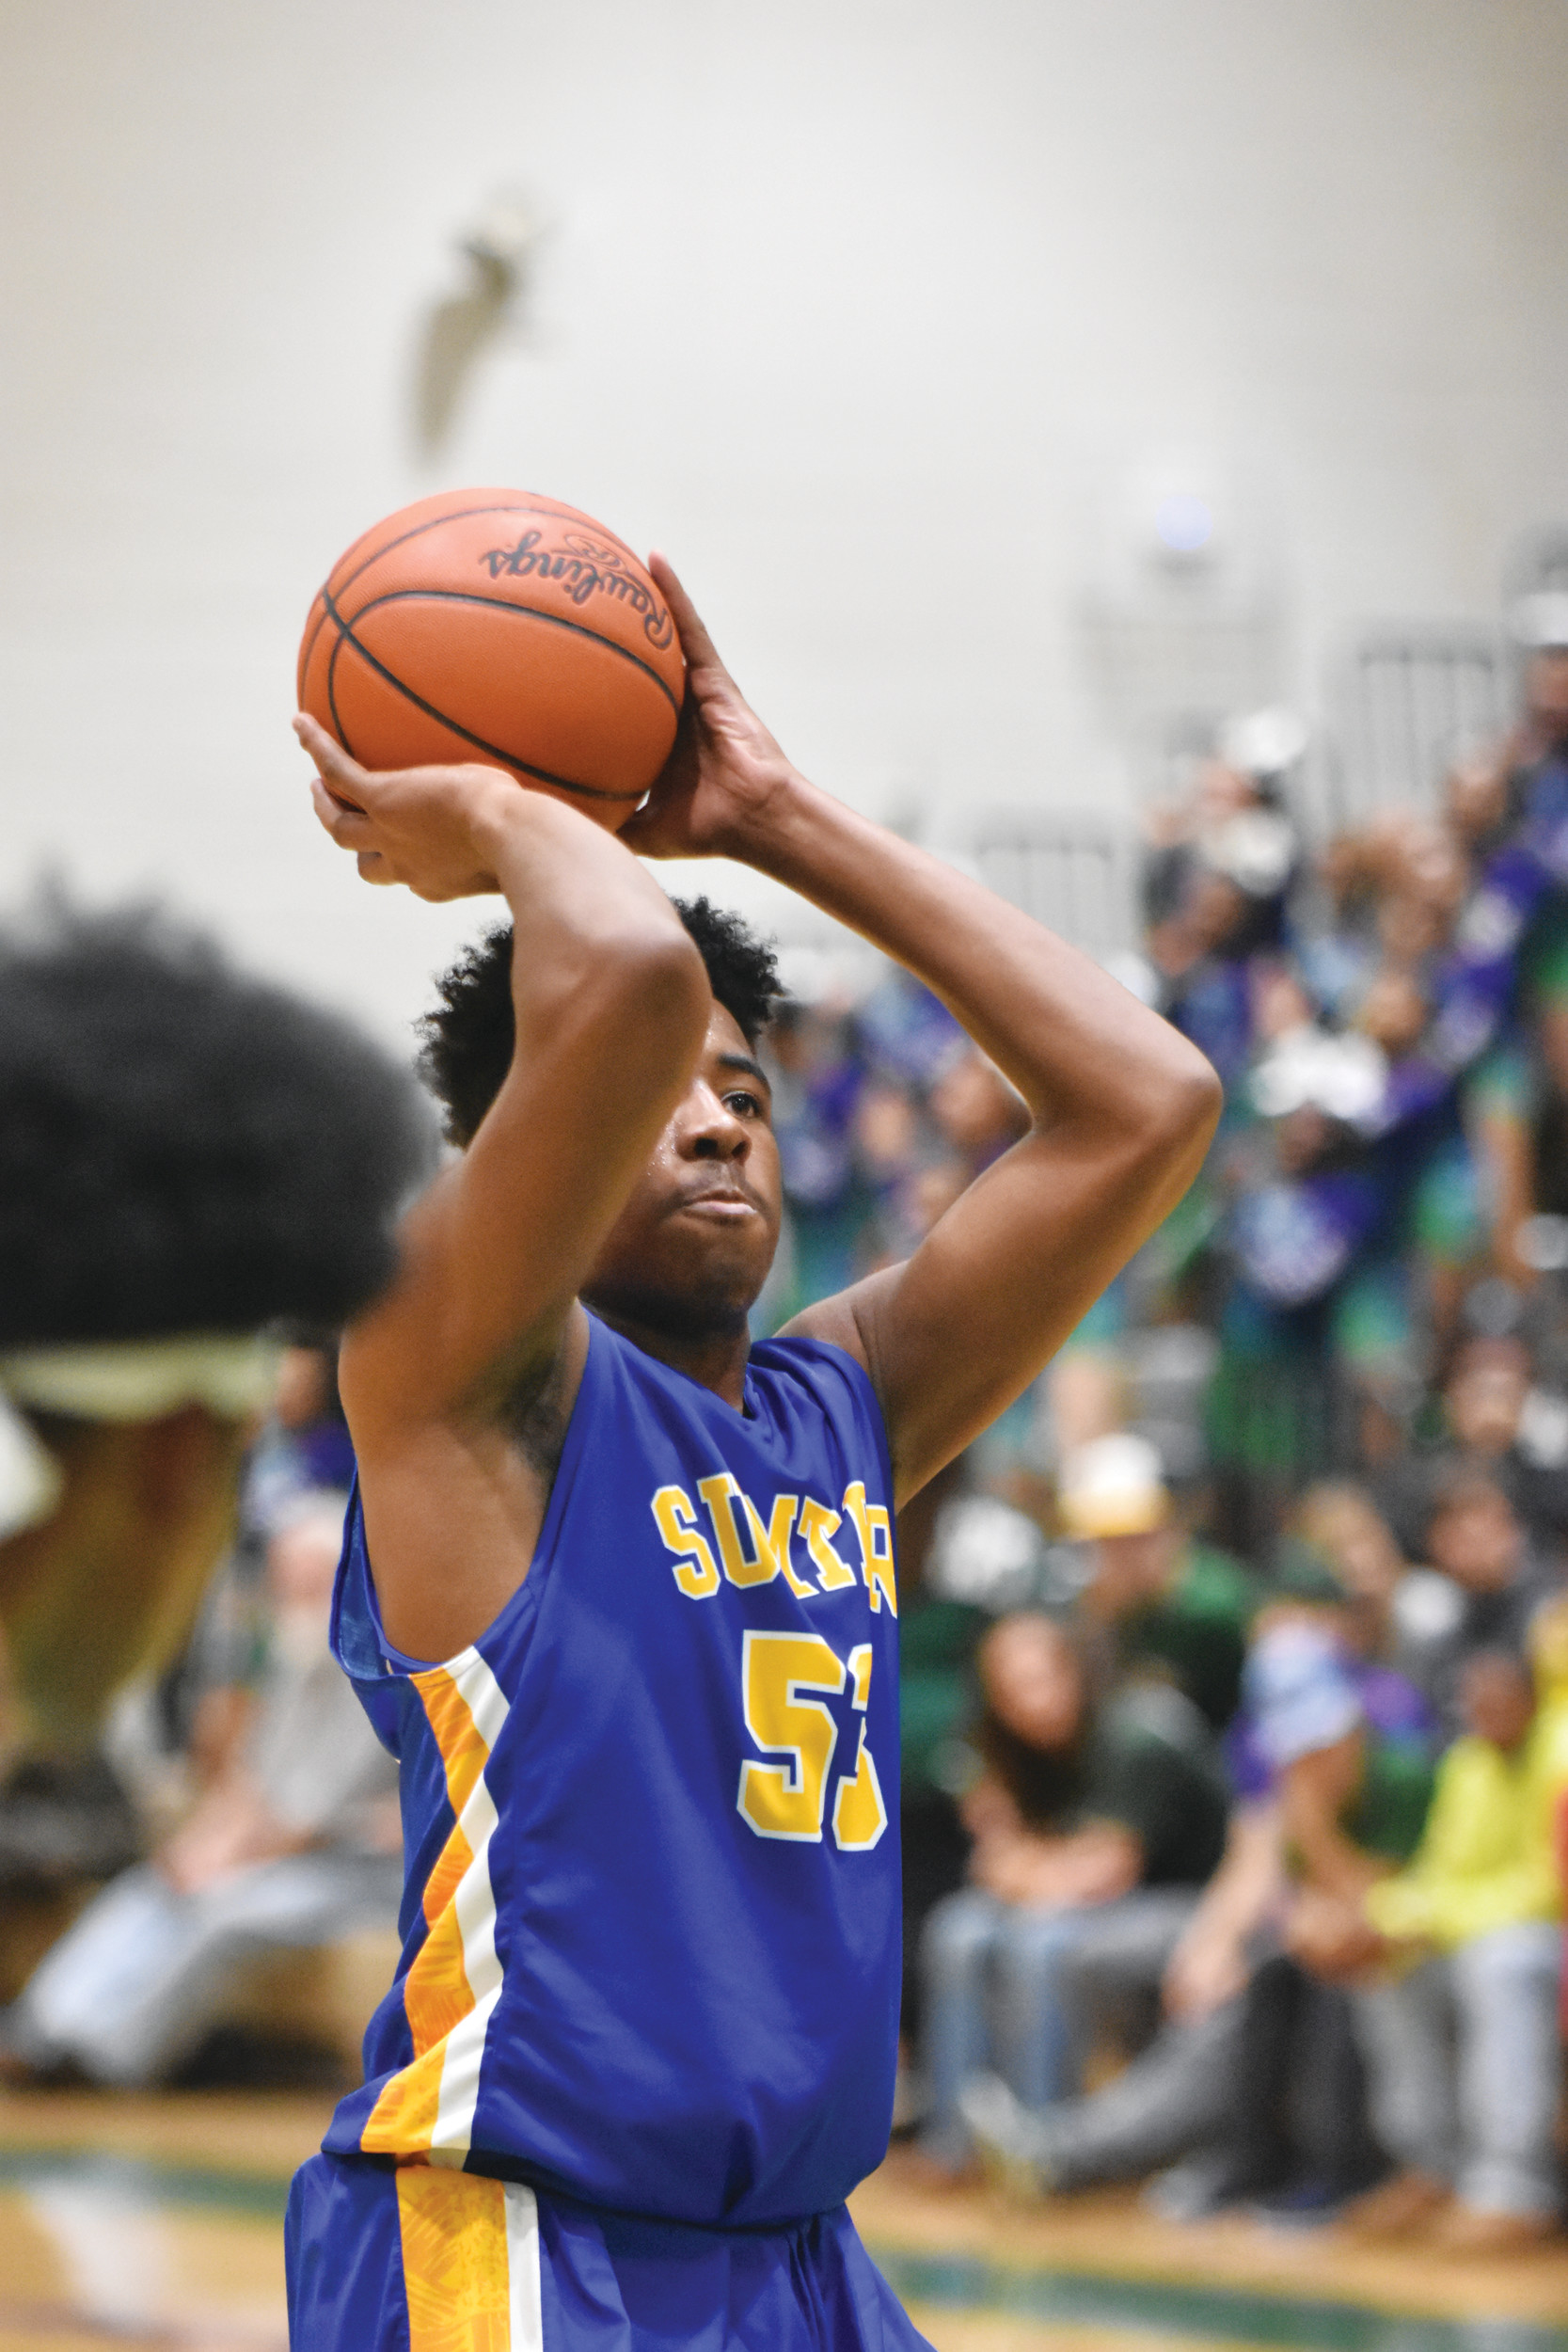 Sumter's Eric Watts shoots a free throw during the third quarter of the Gamecocks' 70-37 victory over Lakewood on Friday at The Swamp.